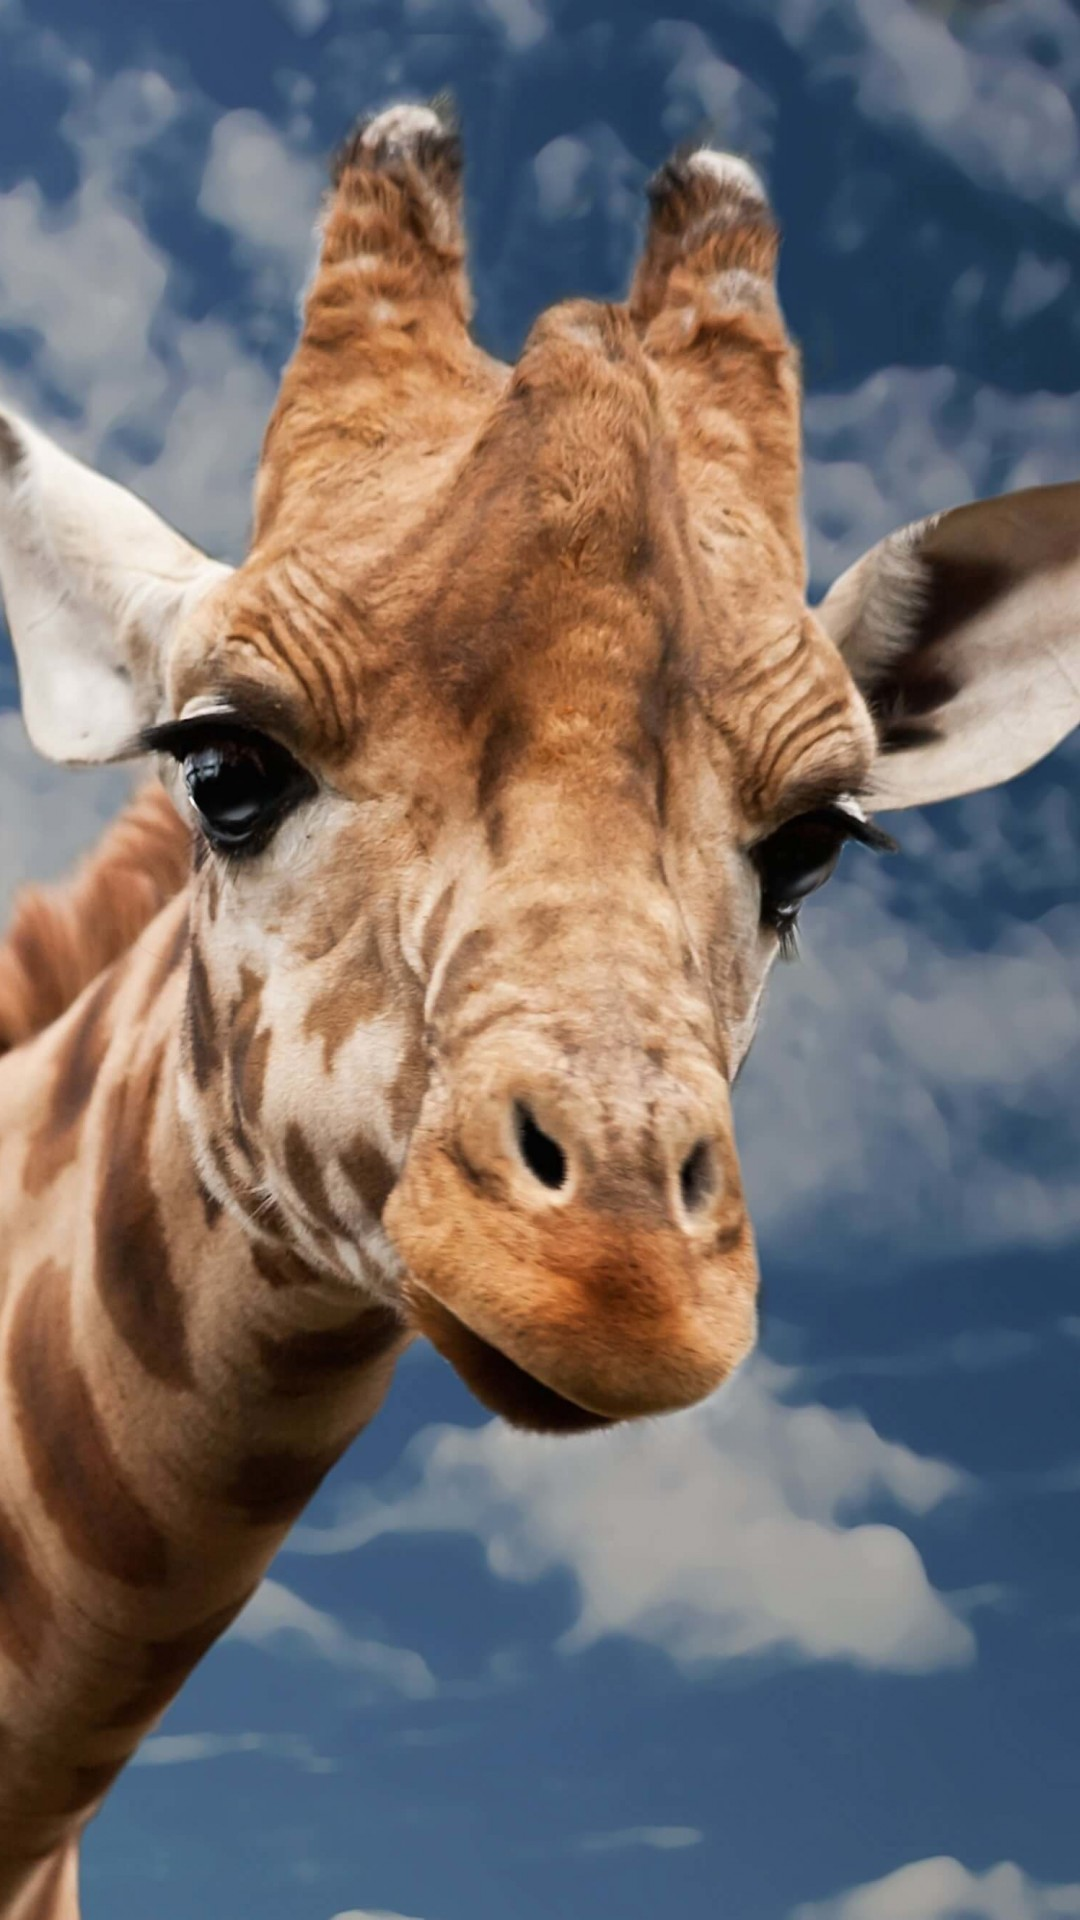 Funny Giraffe Wallpaper for SONY Xperia Z2